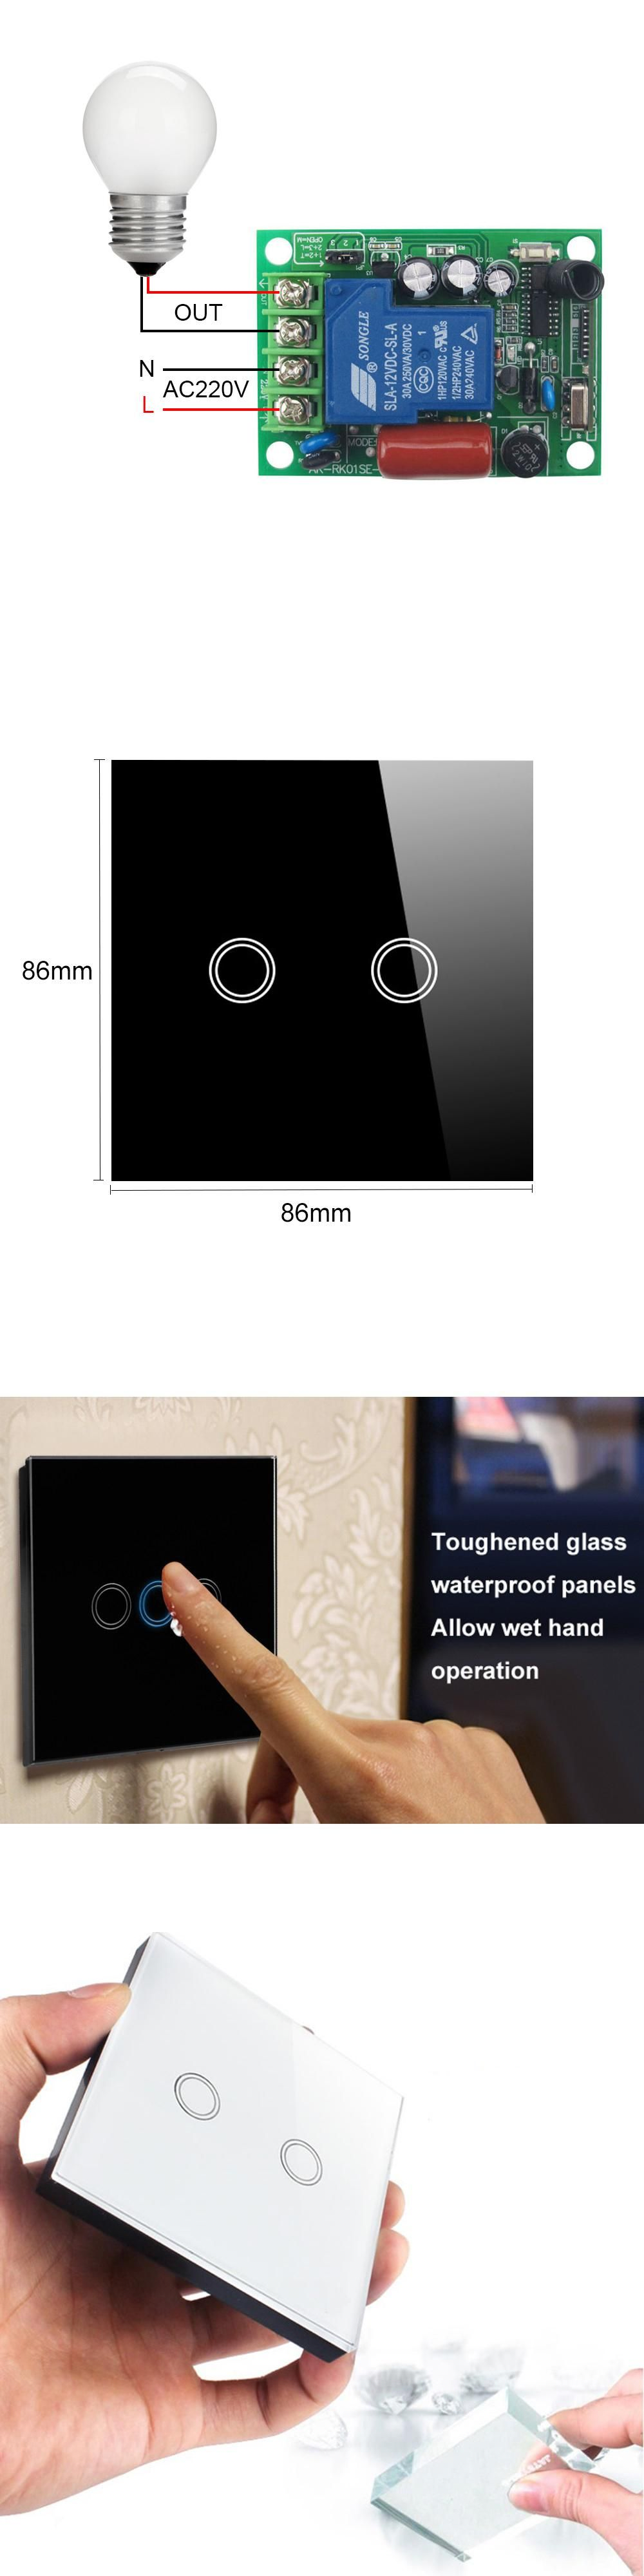 radio light way hand white with via touch rf pairing controller gang held glstouch glass smart panel multi dp switch frequency control